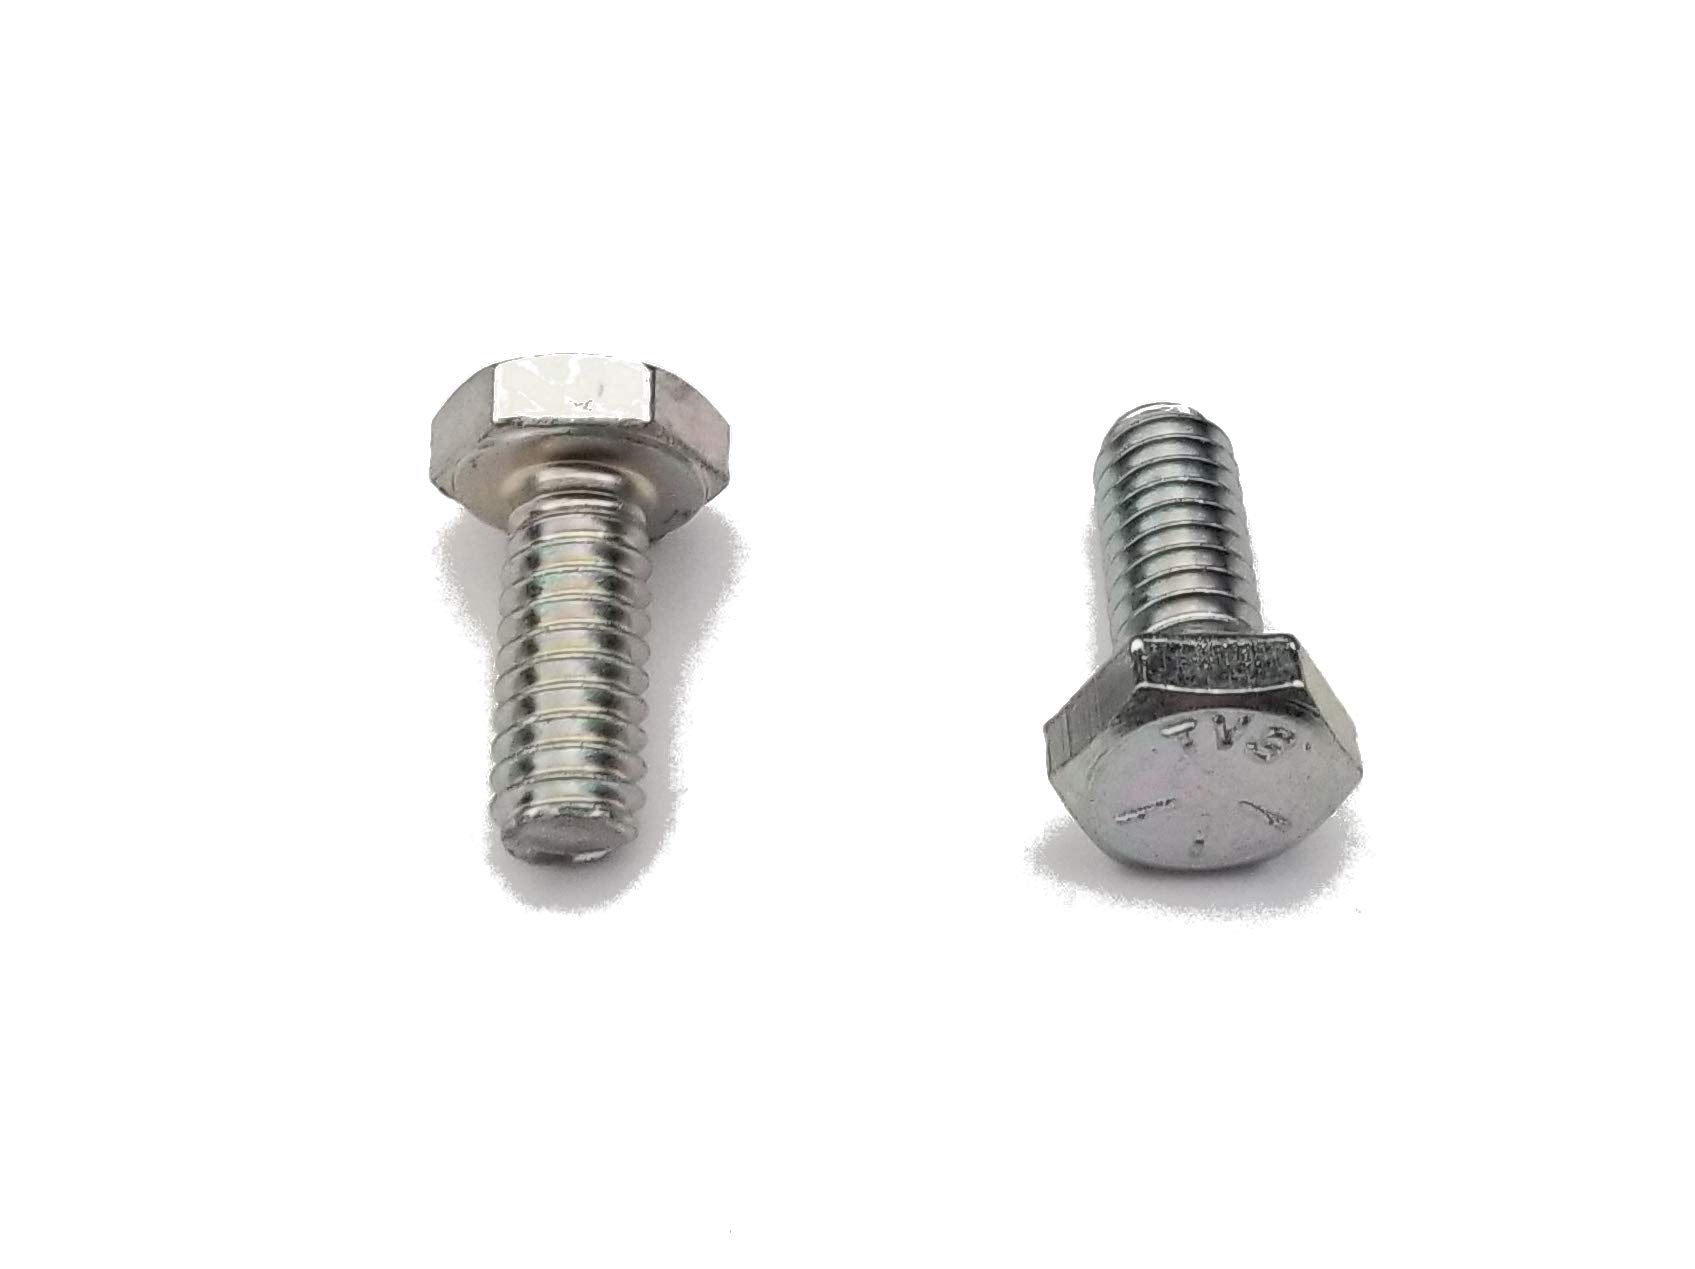 John Deere Original Equipment Cap Screw (2 PACK) - 19H1919